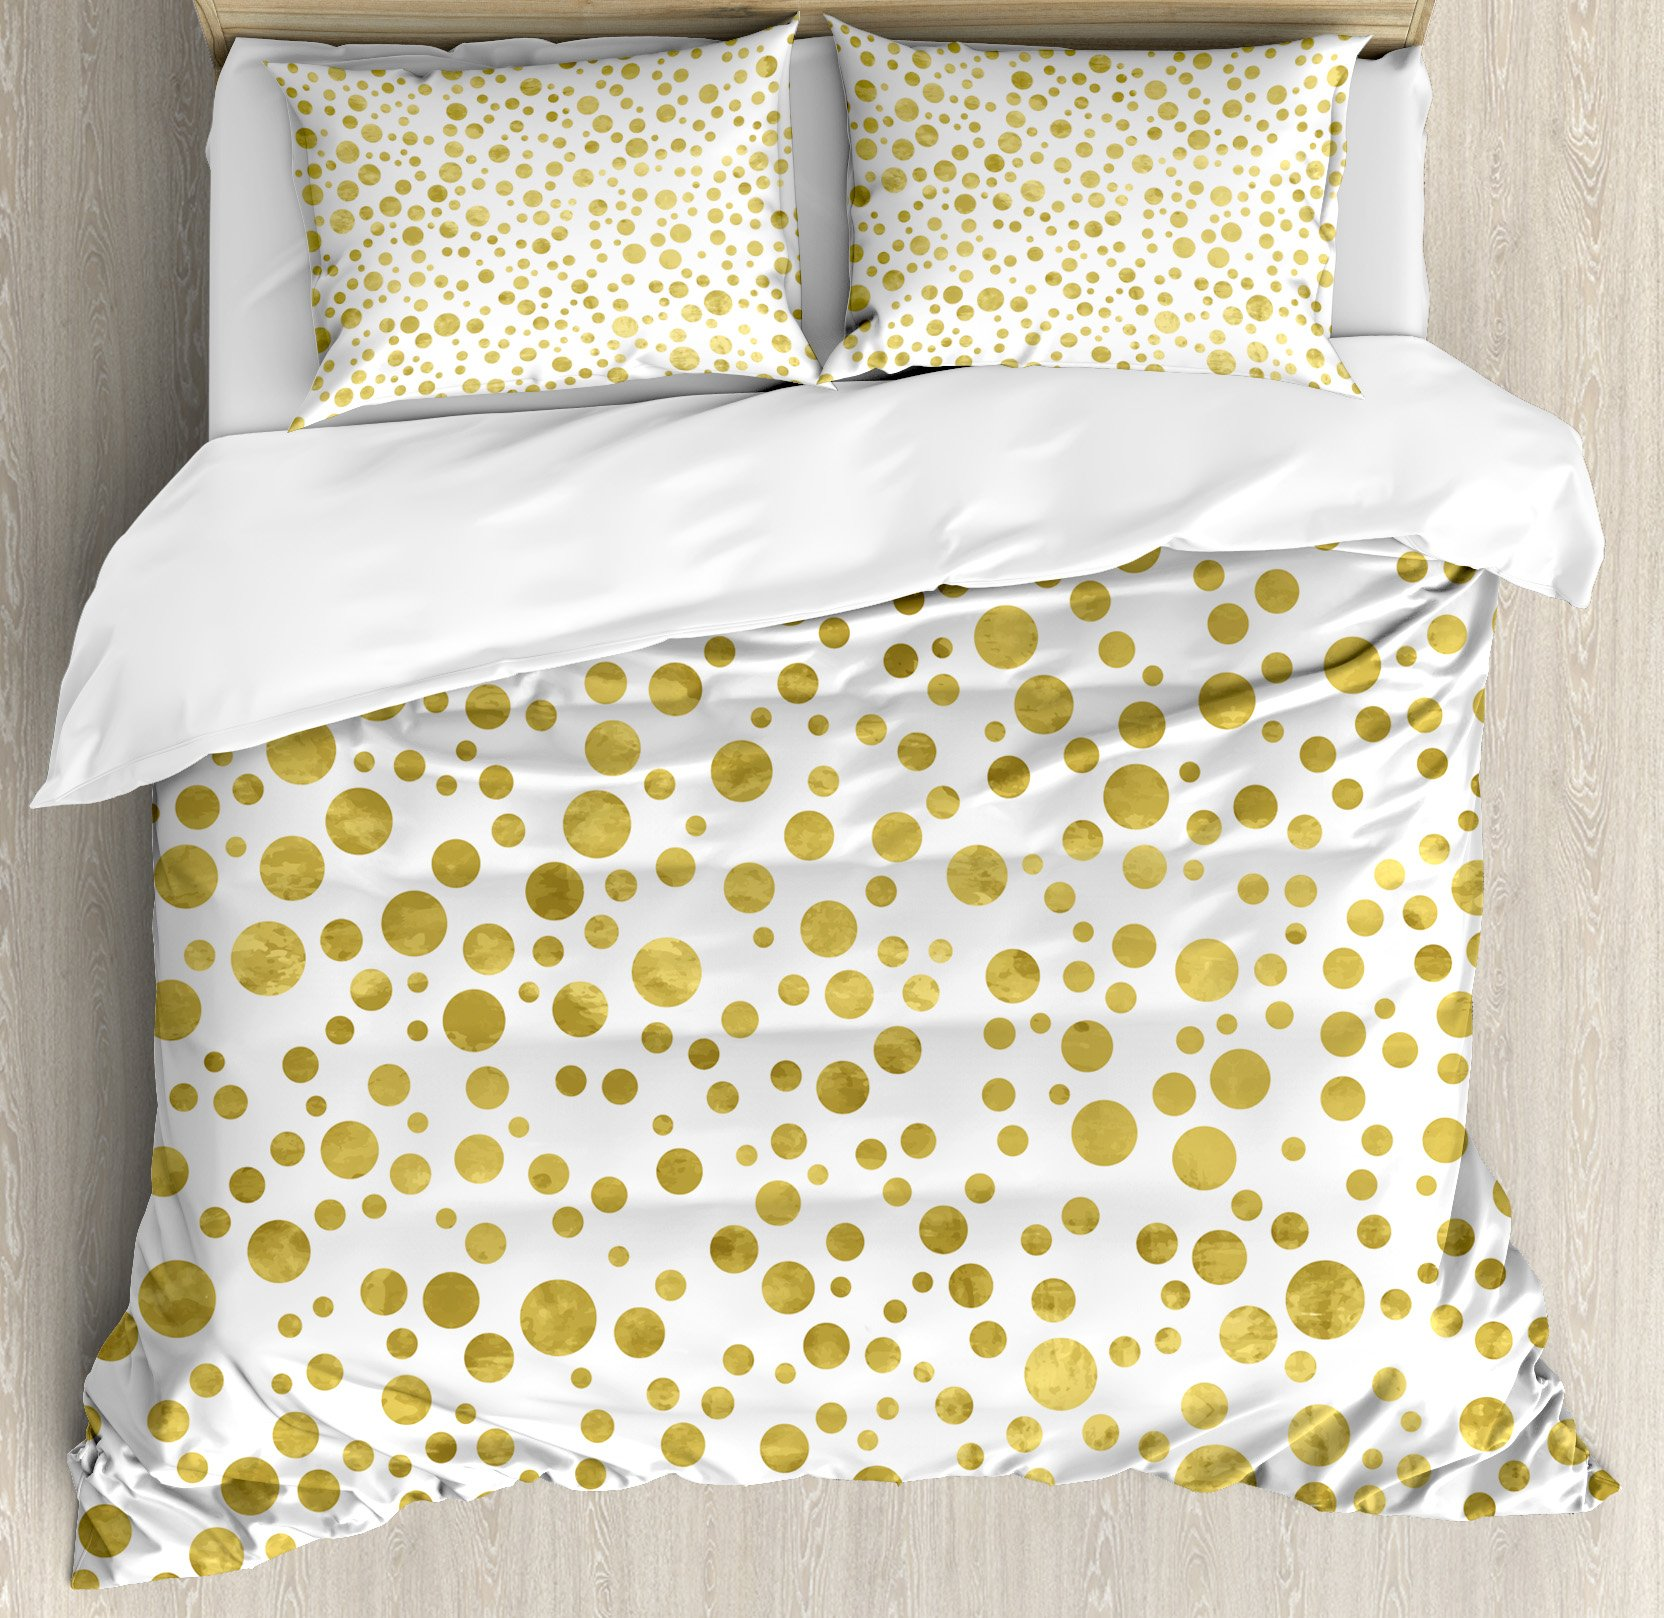 Polka Dots Duvet Cover Set by Ambesonne, Illustration of Golden Polka Dots Vintage Style Art Deco Pattern Bridal Decor, 3 Piece Bedding Set with Pillow Shams, King Size, Gold White